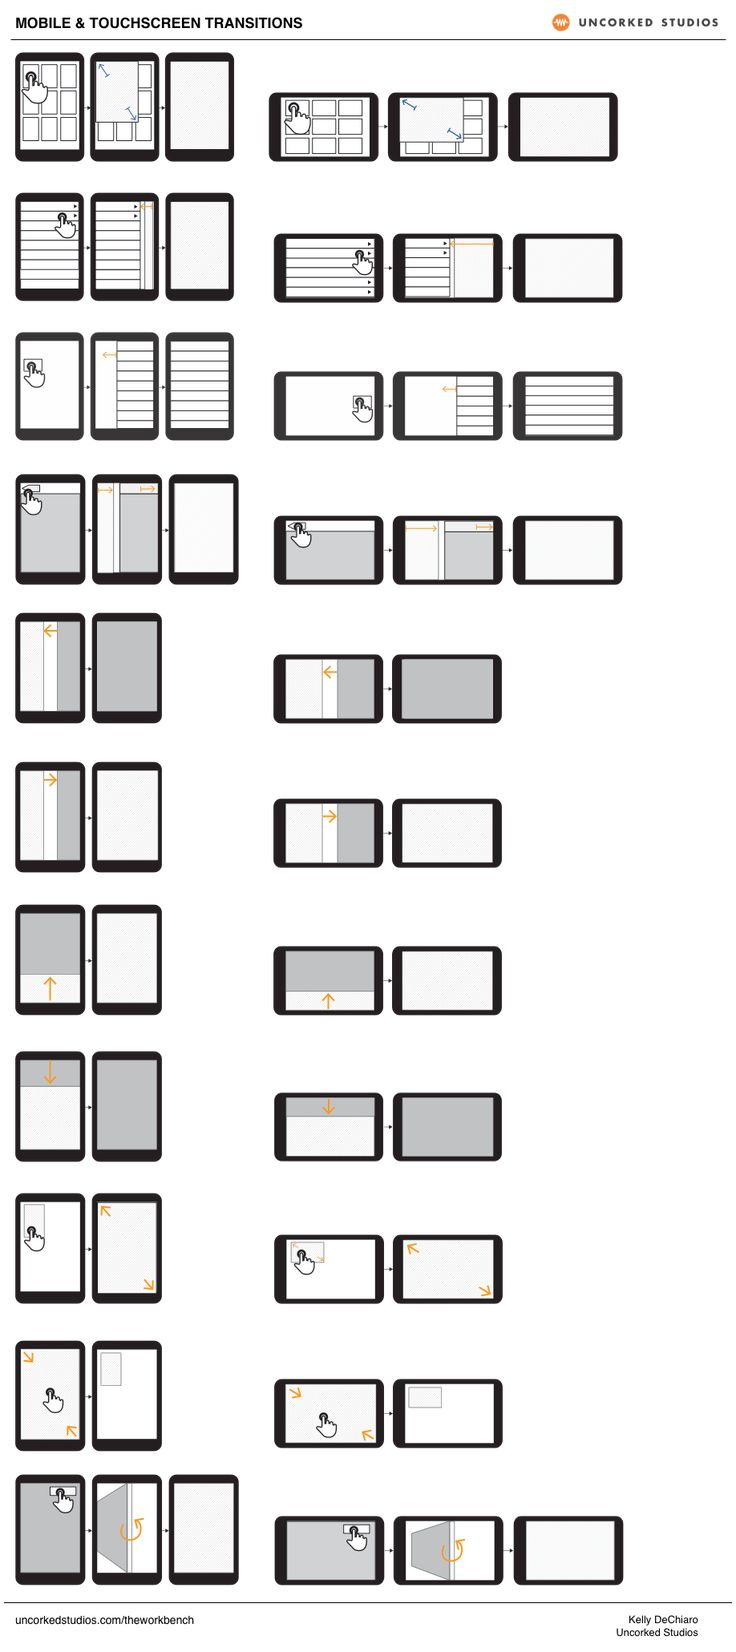 Mobile & Touchscreen transitions